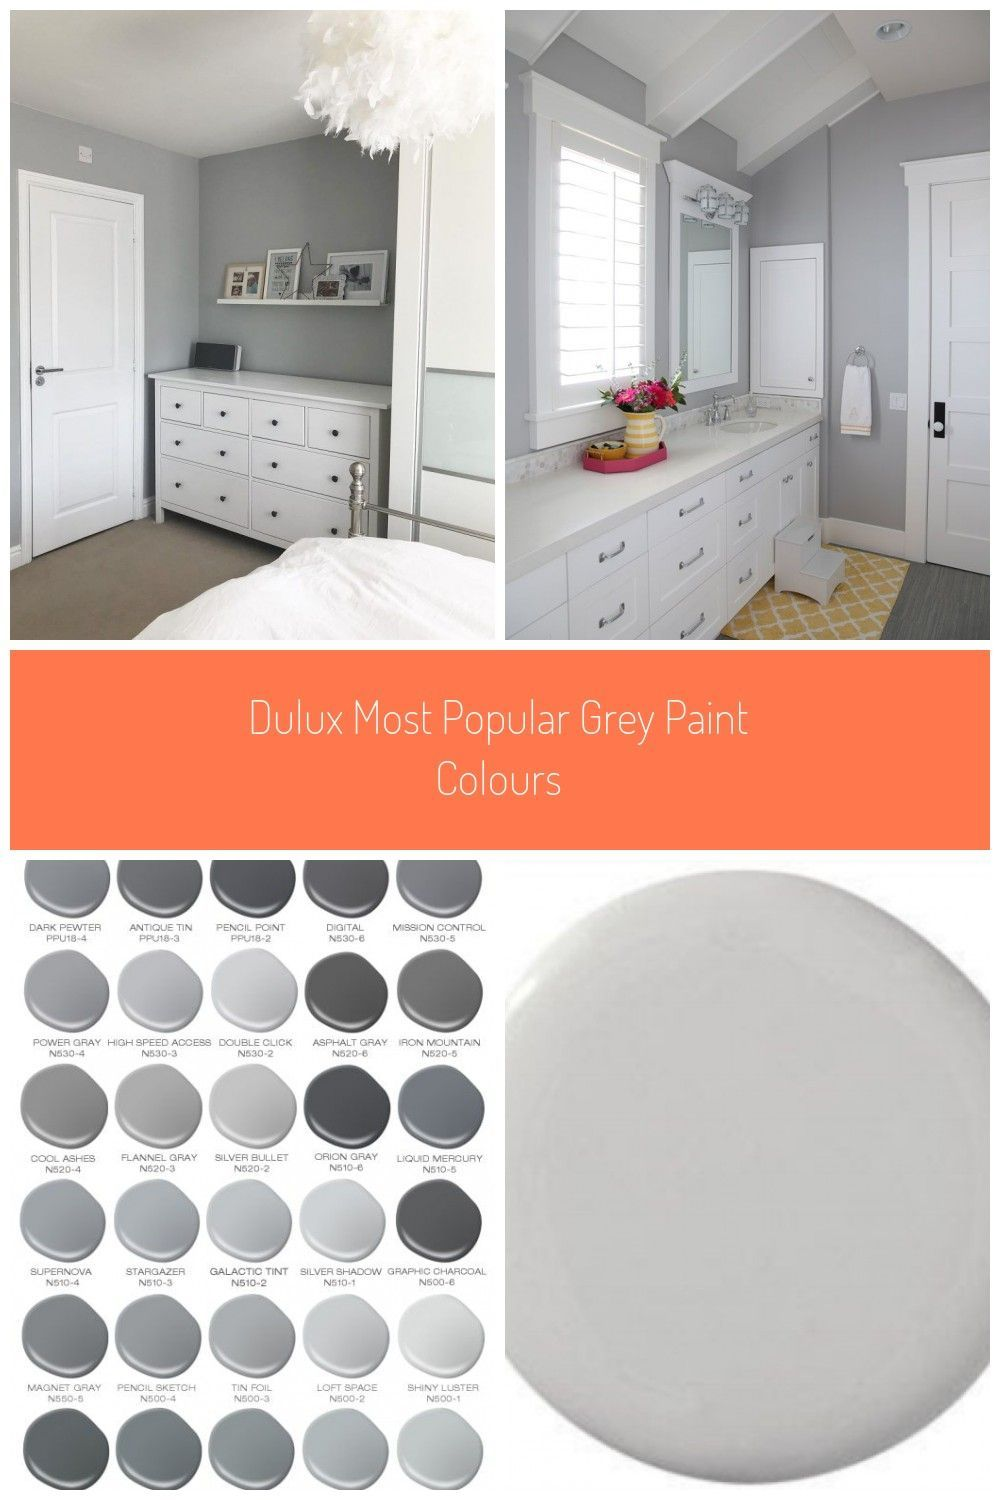 Light Grey Wall Paint Dulux In 2020 Gray Painted Walls Bedroom Paint Colors Grey Popular Grey Paint Colors